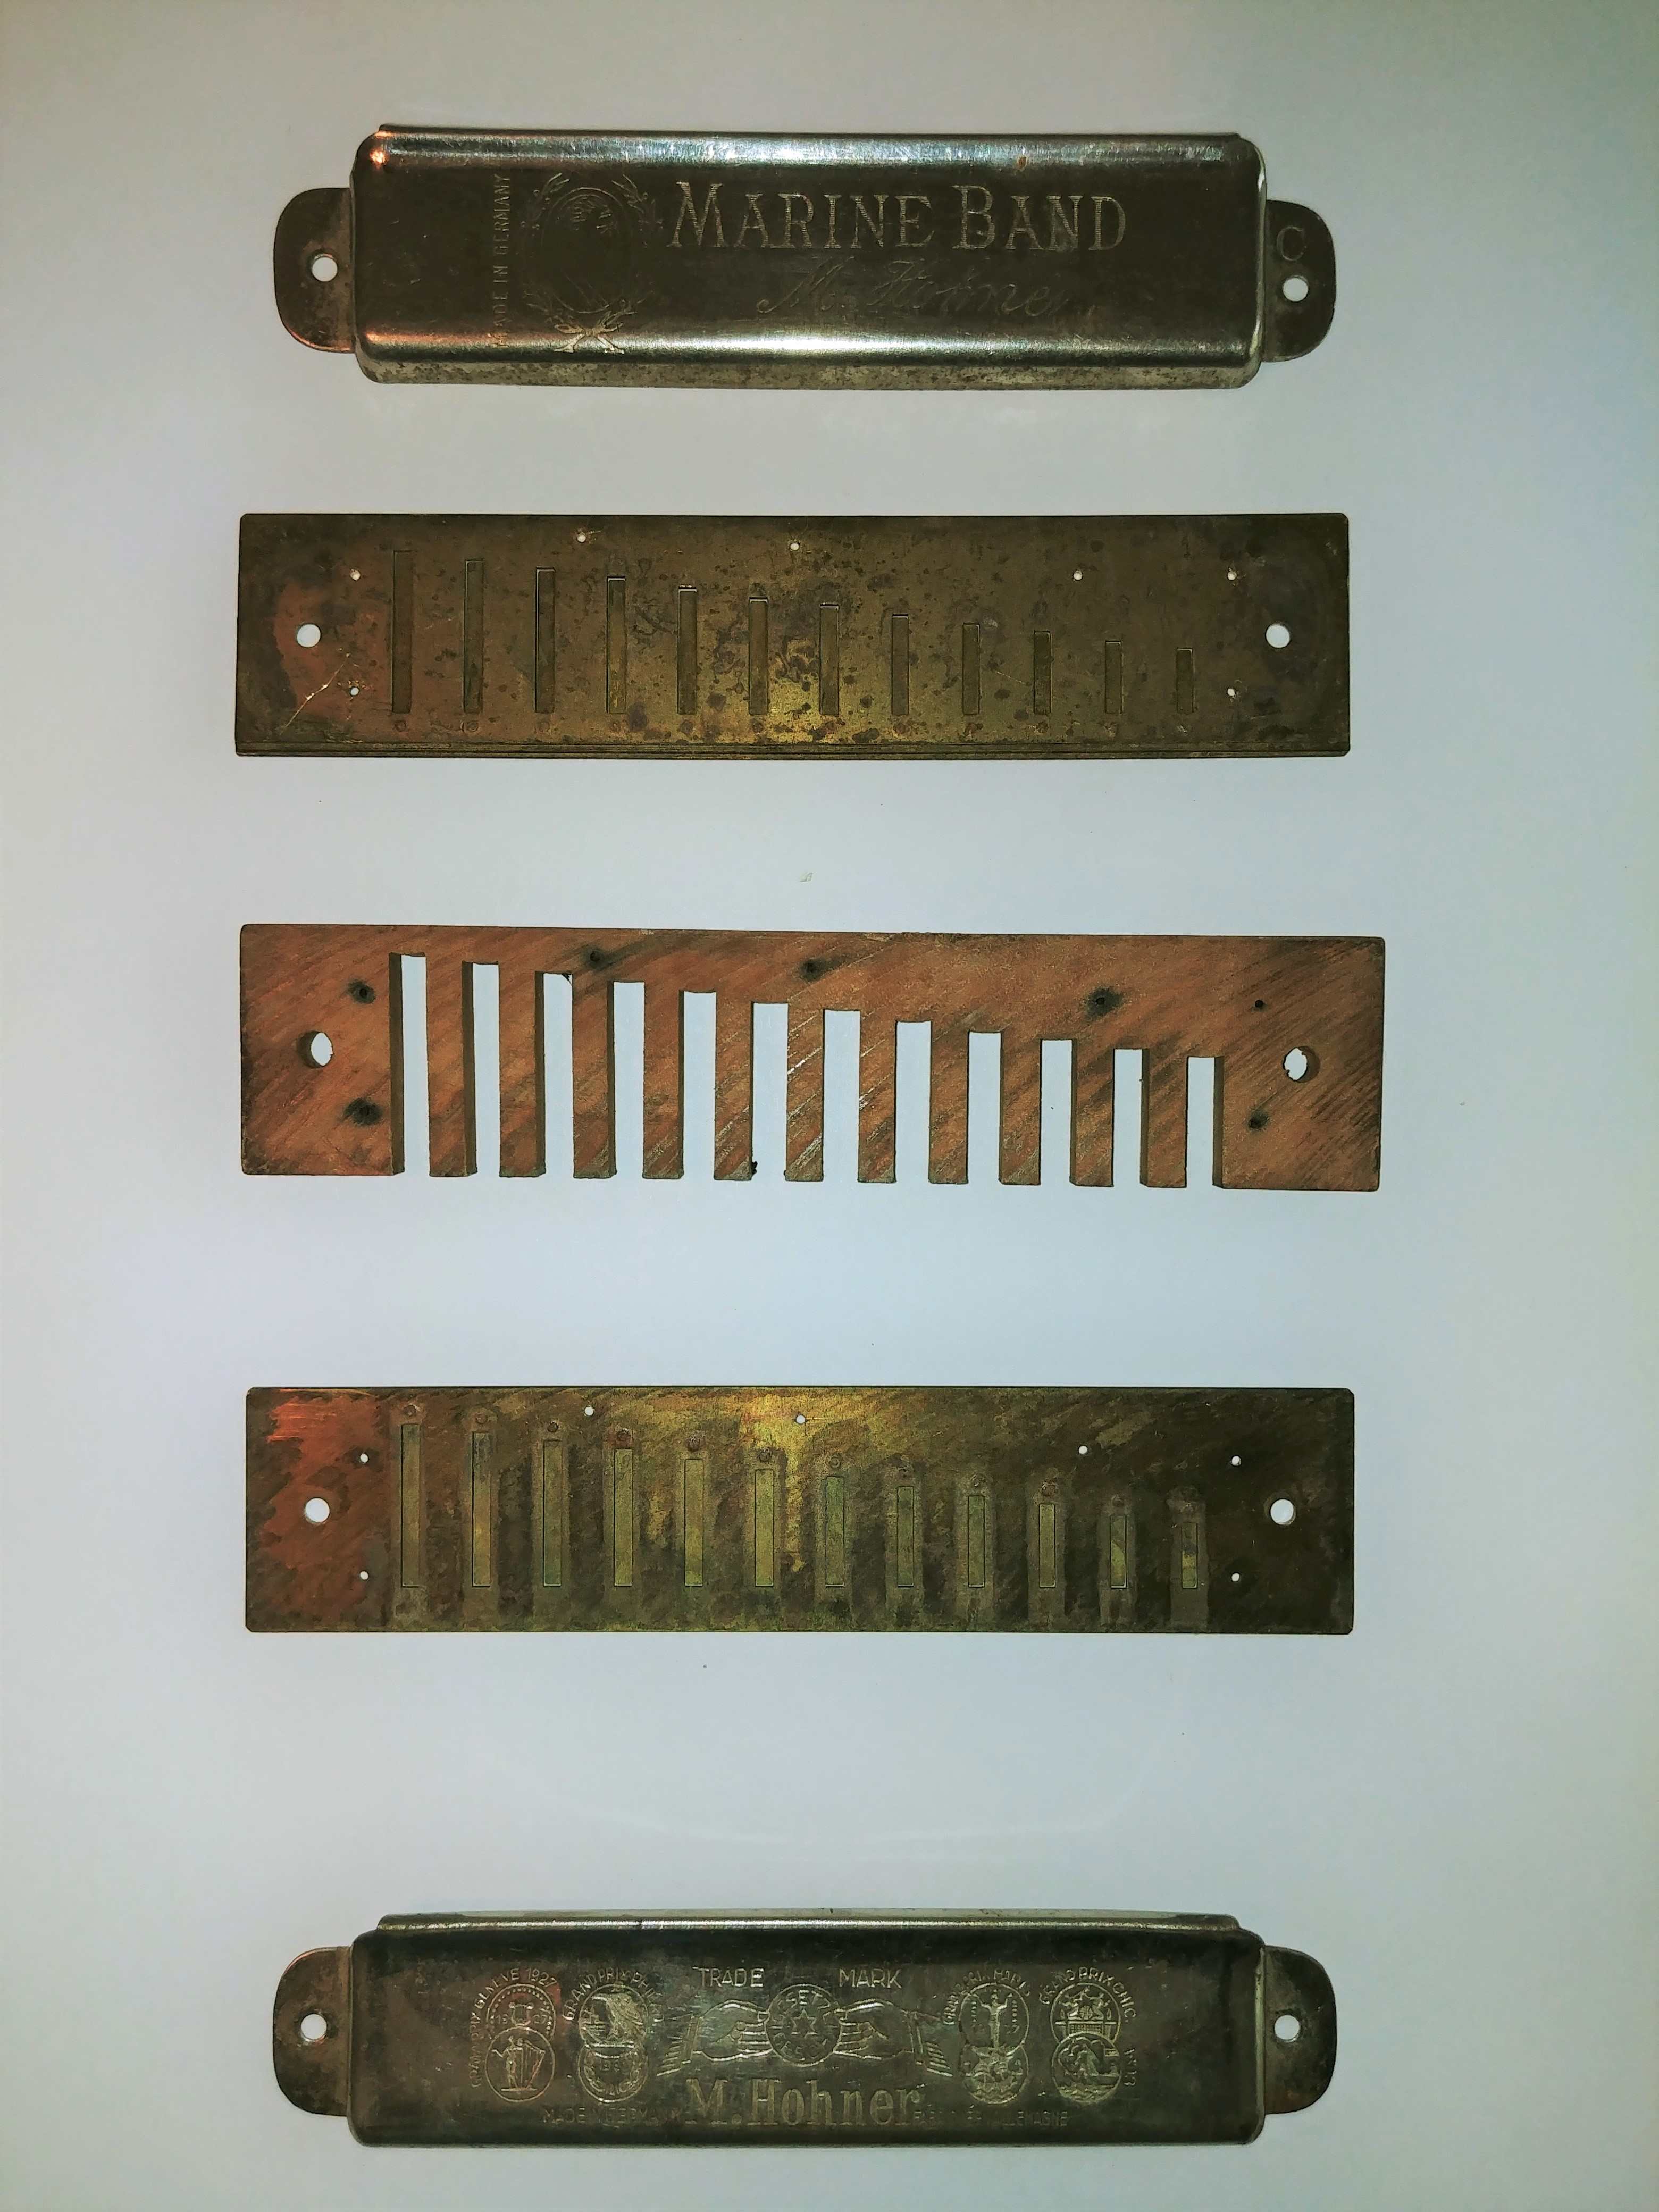 Parts of a Harmonica.